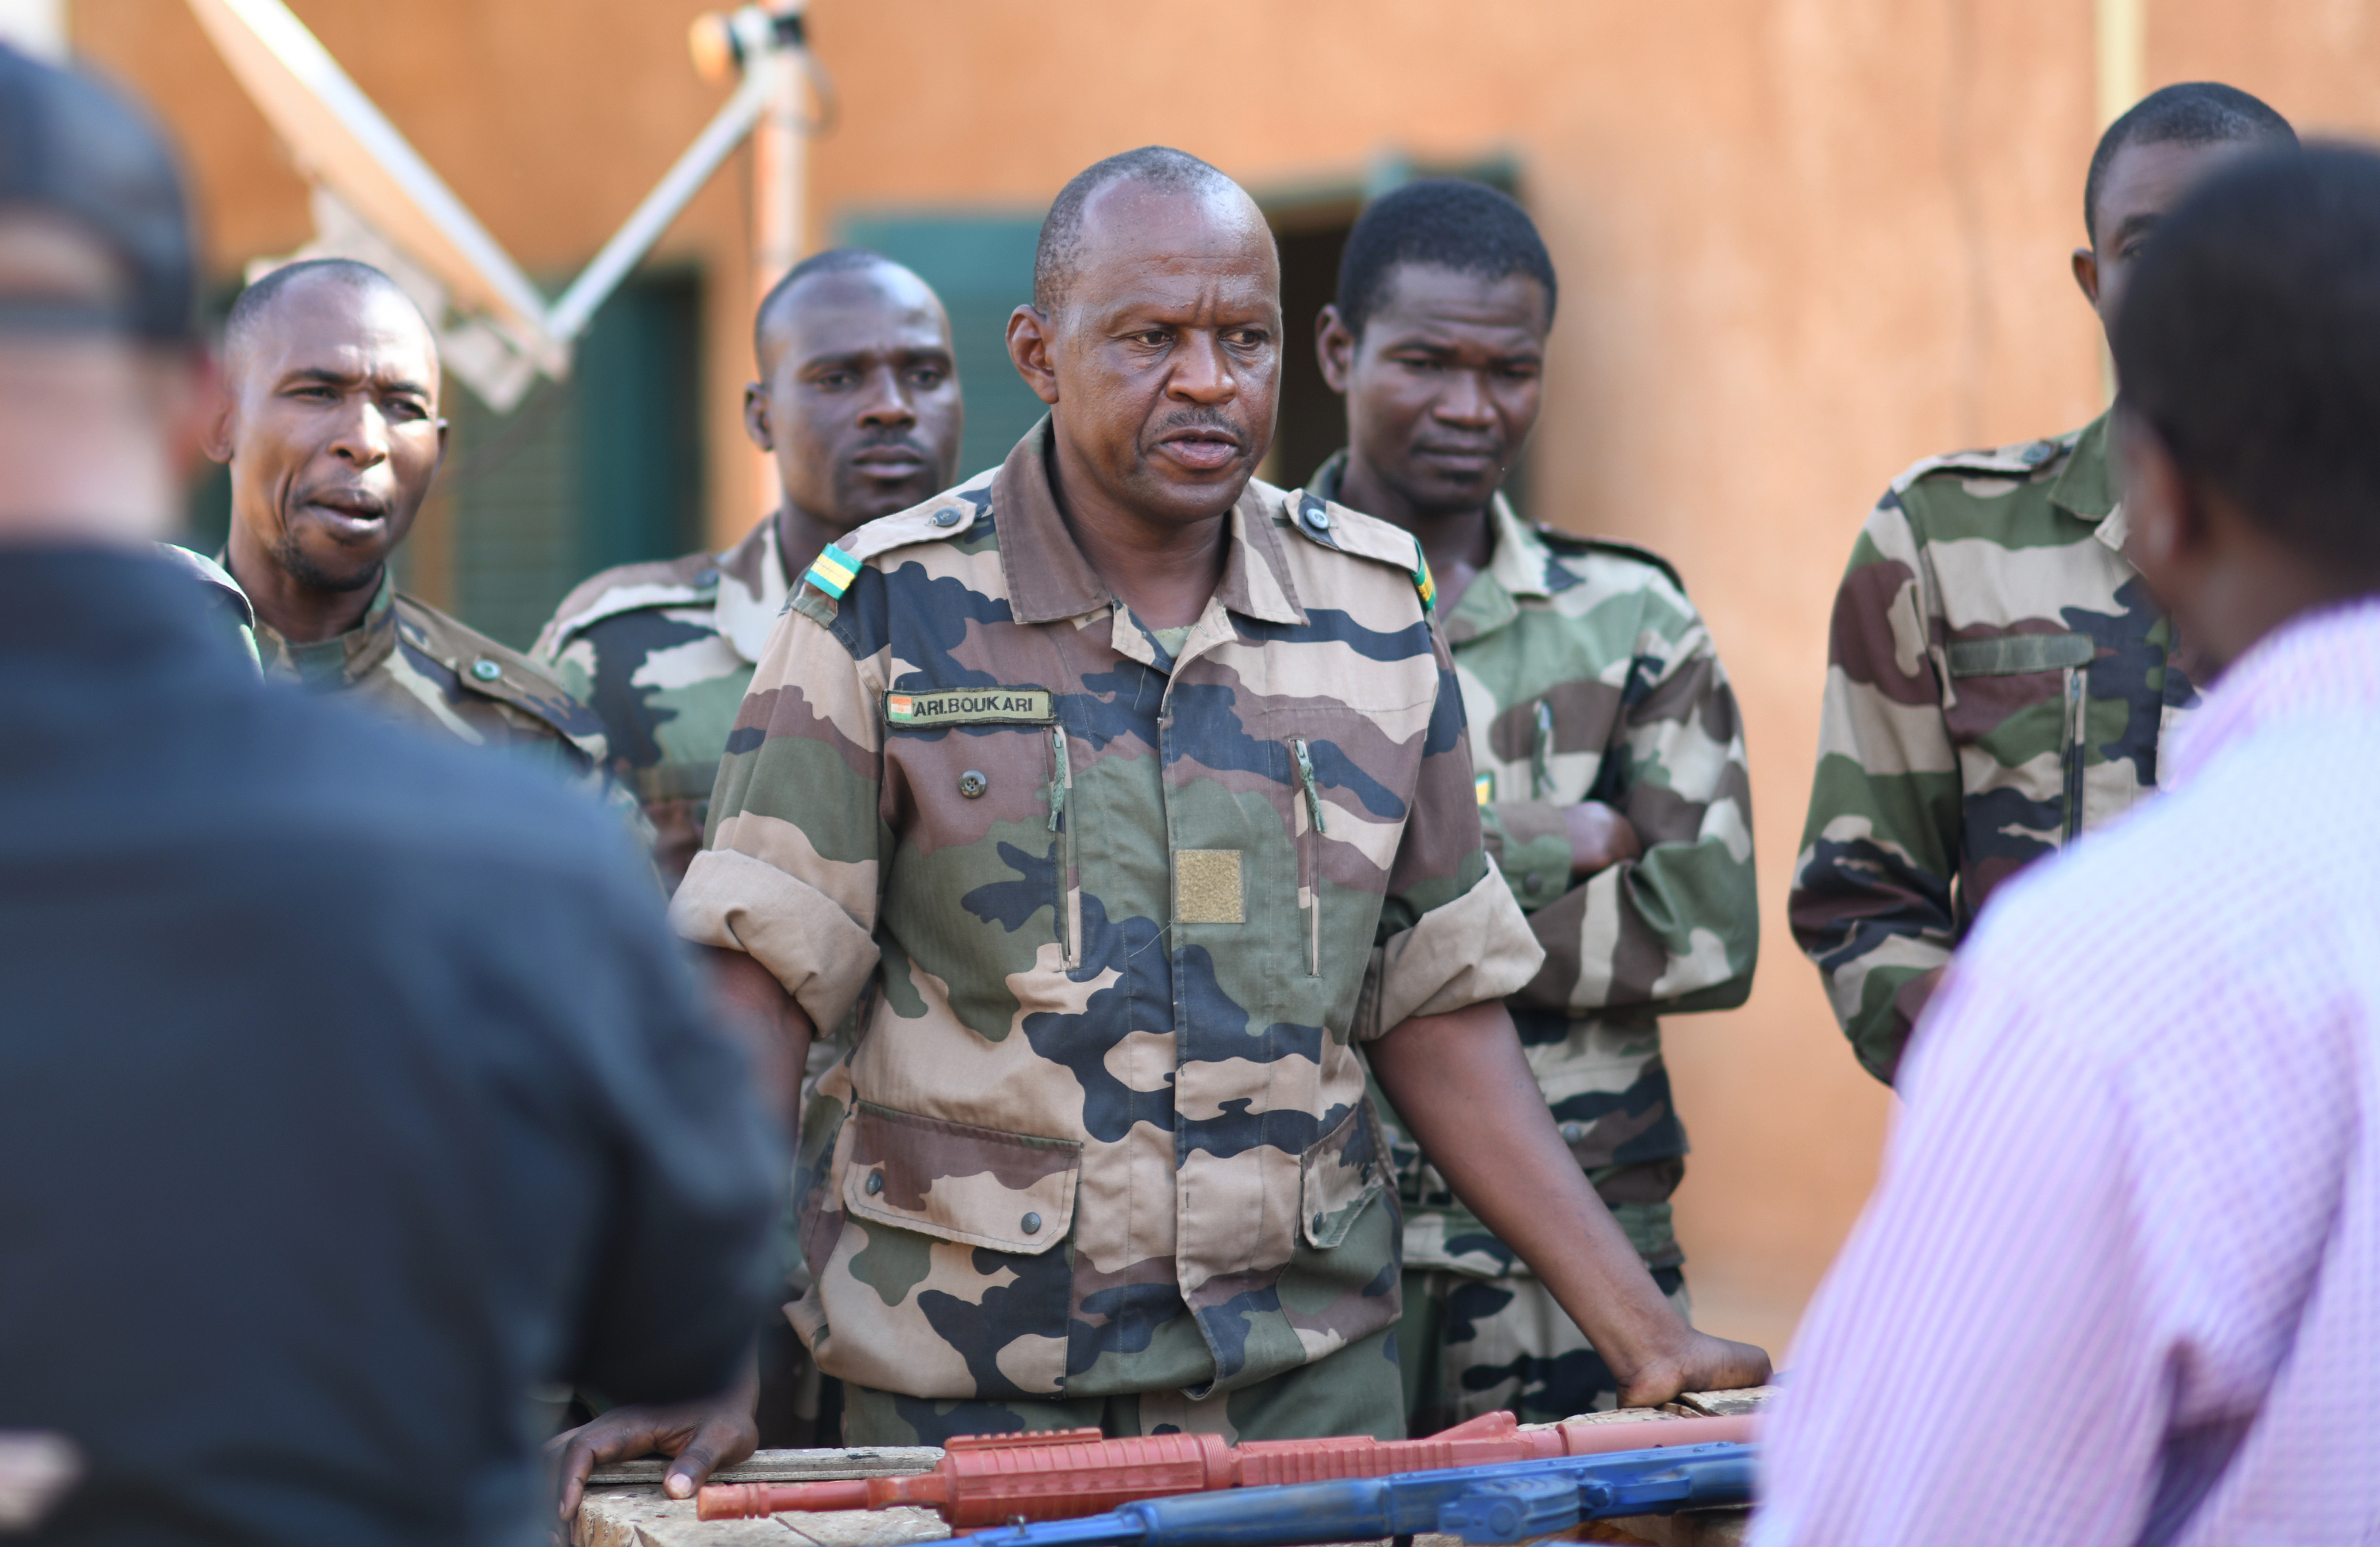 A Forces Armées Nigeriennes (Nigerien Armed Forces) Genie Unit member speaks to instructors during an Improvised Explosive Device Awareness Course in Niamey, Niger, Oct. 11, 2019. During the week-long course, the 768th Expeditionary Air Base Squadron Explosive Ordnance Disposal team and Security Forces Air Advisors taught FAN personnel valuable skills for the deployed environment such as how to locate and react to an IED, how set up a cordon and the procedures to clear the area. (U.S. Air Force photo by Staff Sgt. Alex Fox Echols III)